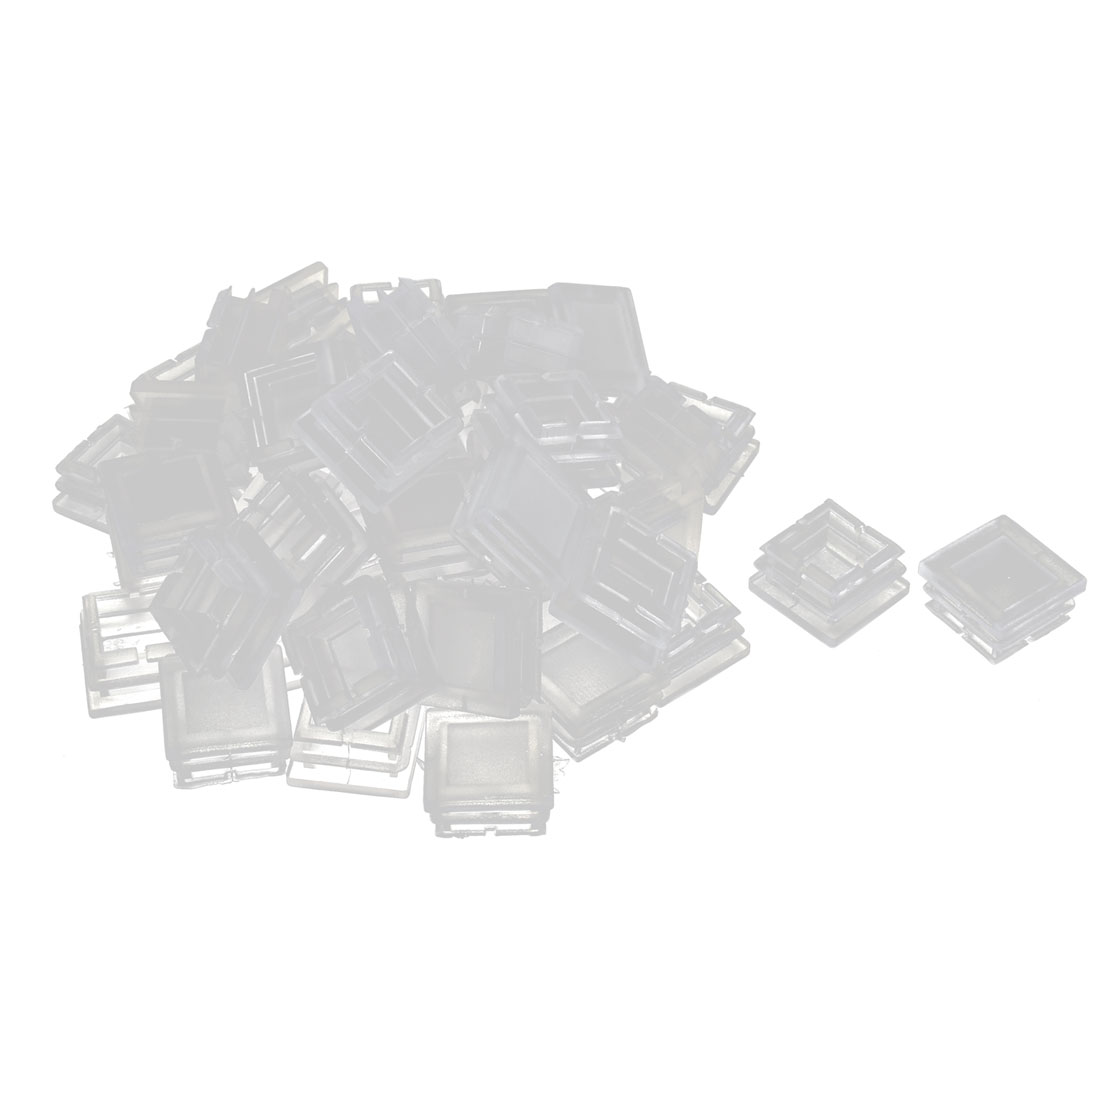 Plastic Square Tube Pipe Inserts End Blanking Caps Clear 25mmx25mm 50 Pcs